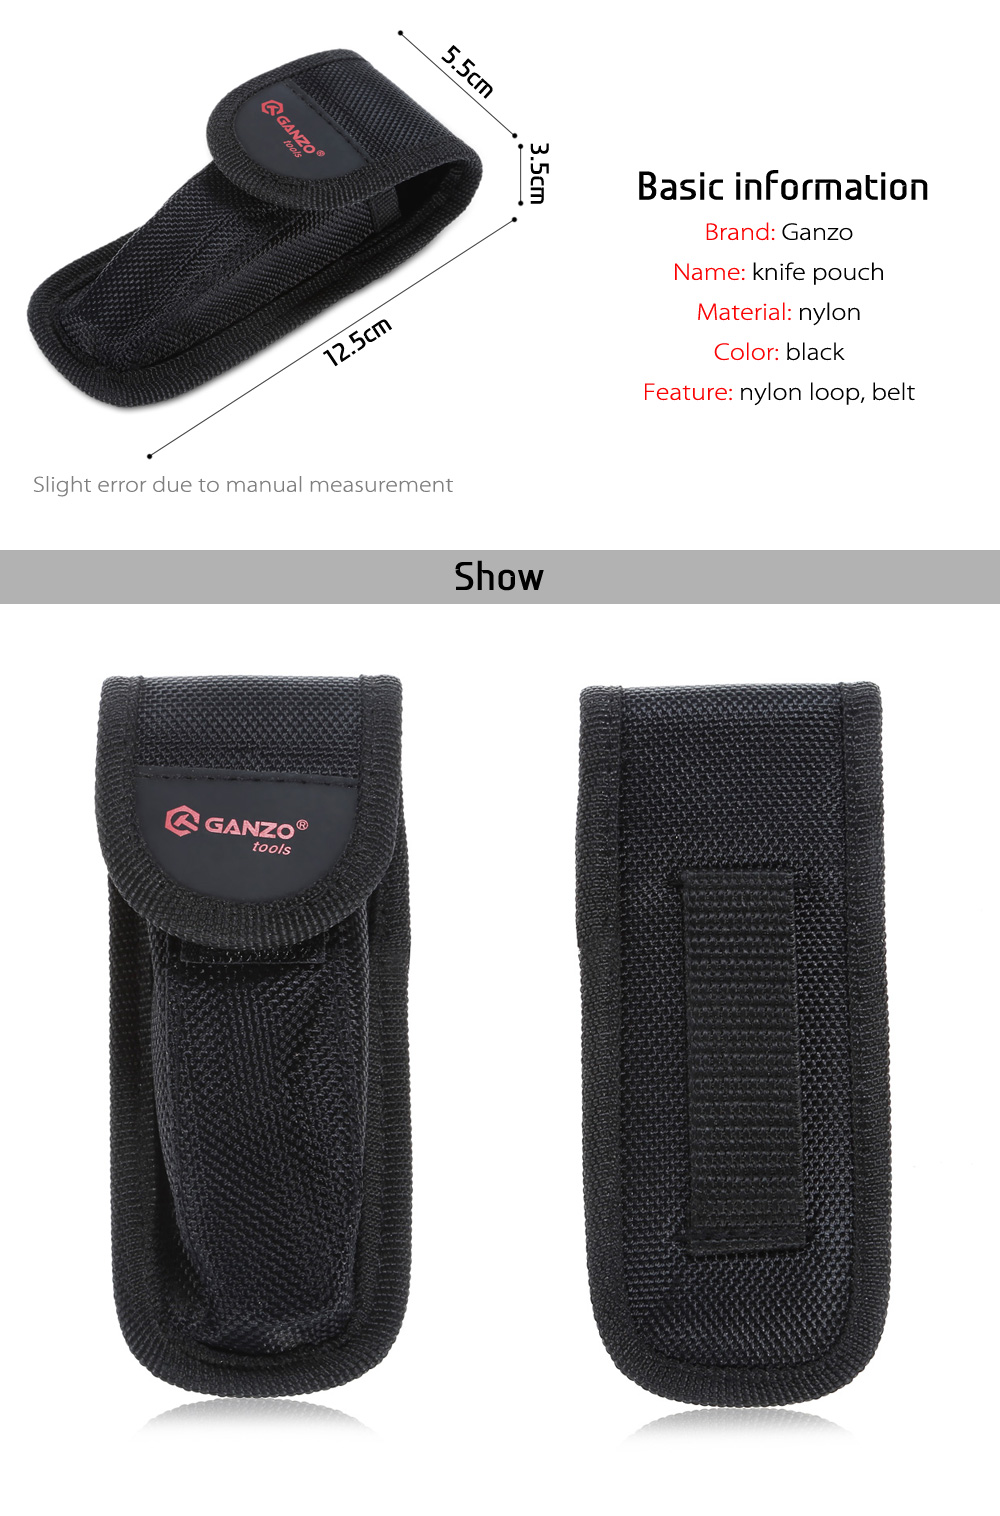 Ganzo Portable Nylon Knife Pouch Sheath with Belt for Hanging Waistband